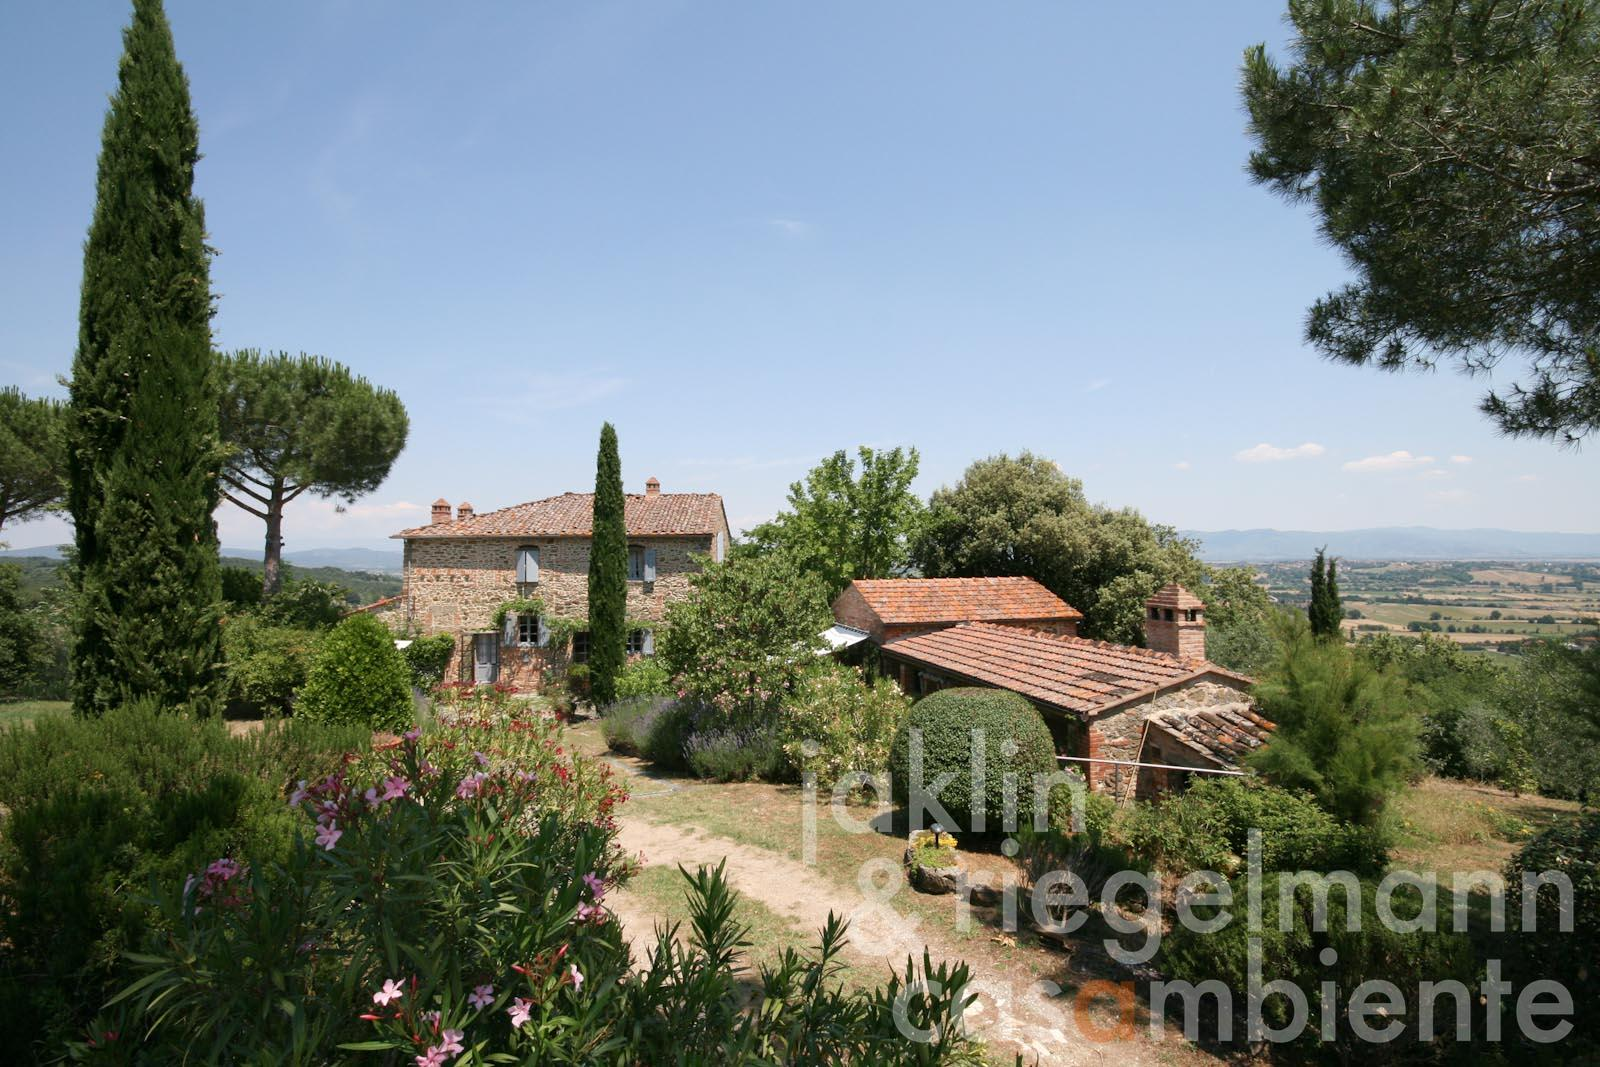 The country house for sale with olive grove in panoramic setting in the Tuscan countryside between Arezzo and Siena